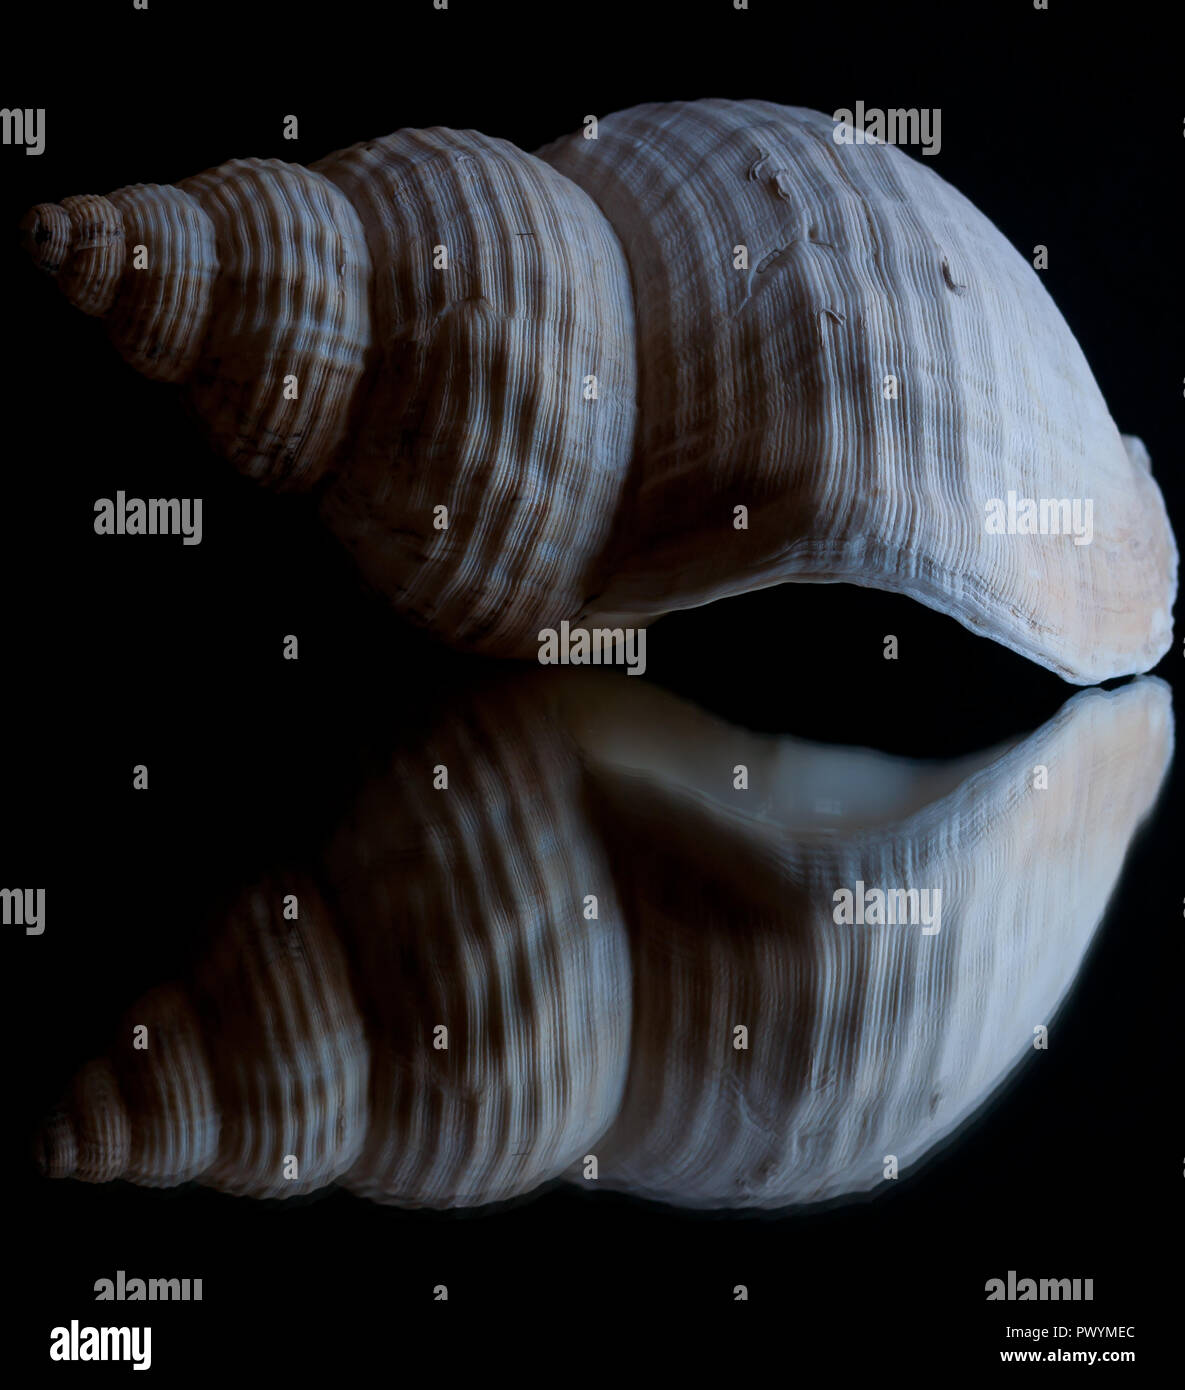 High contrast image and reflection of a seashell with black background Stock Photo